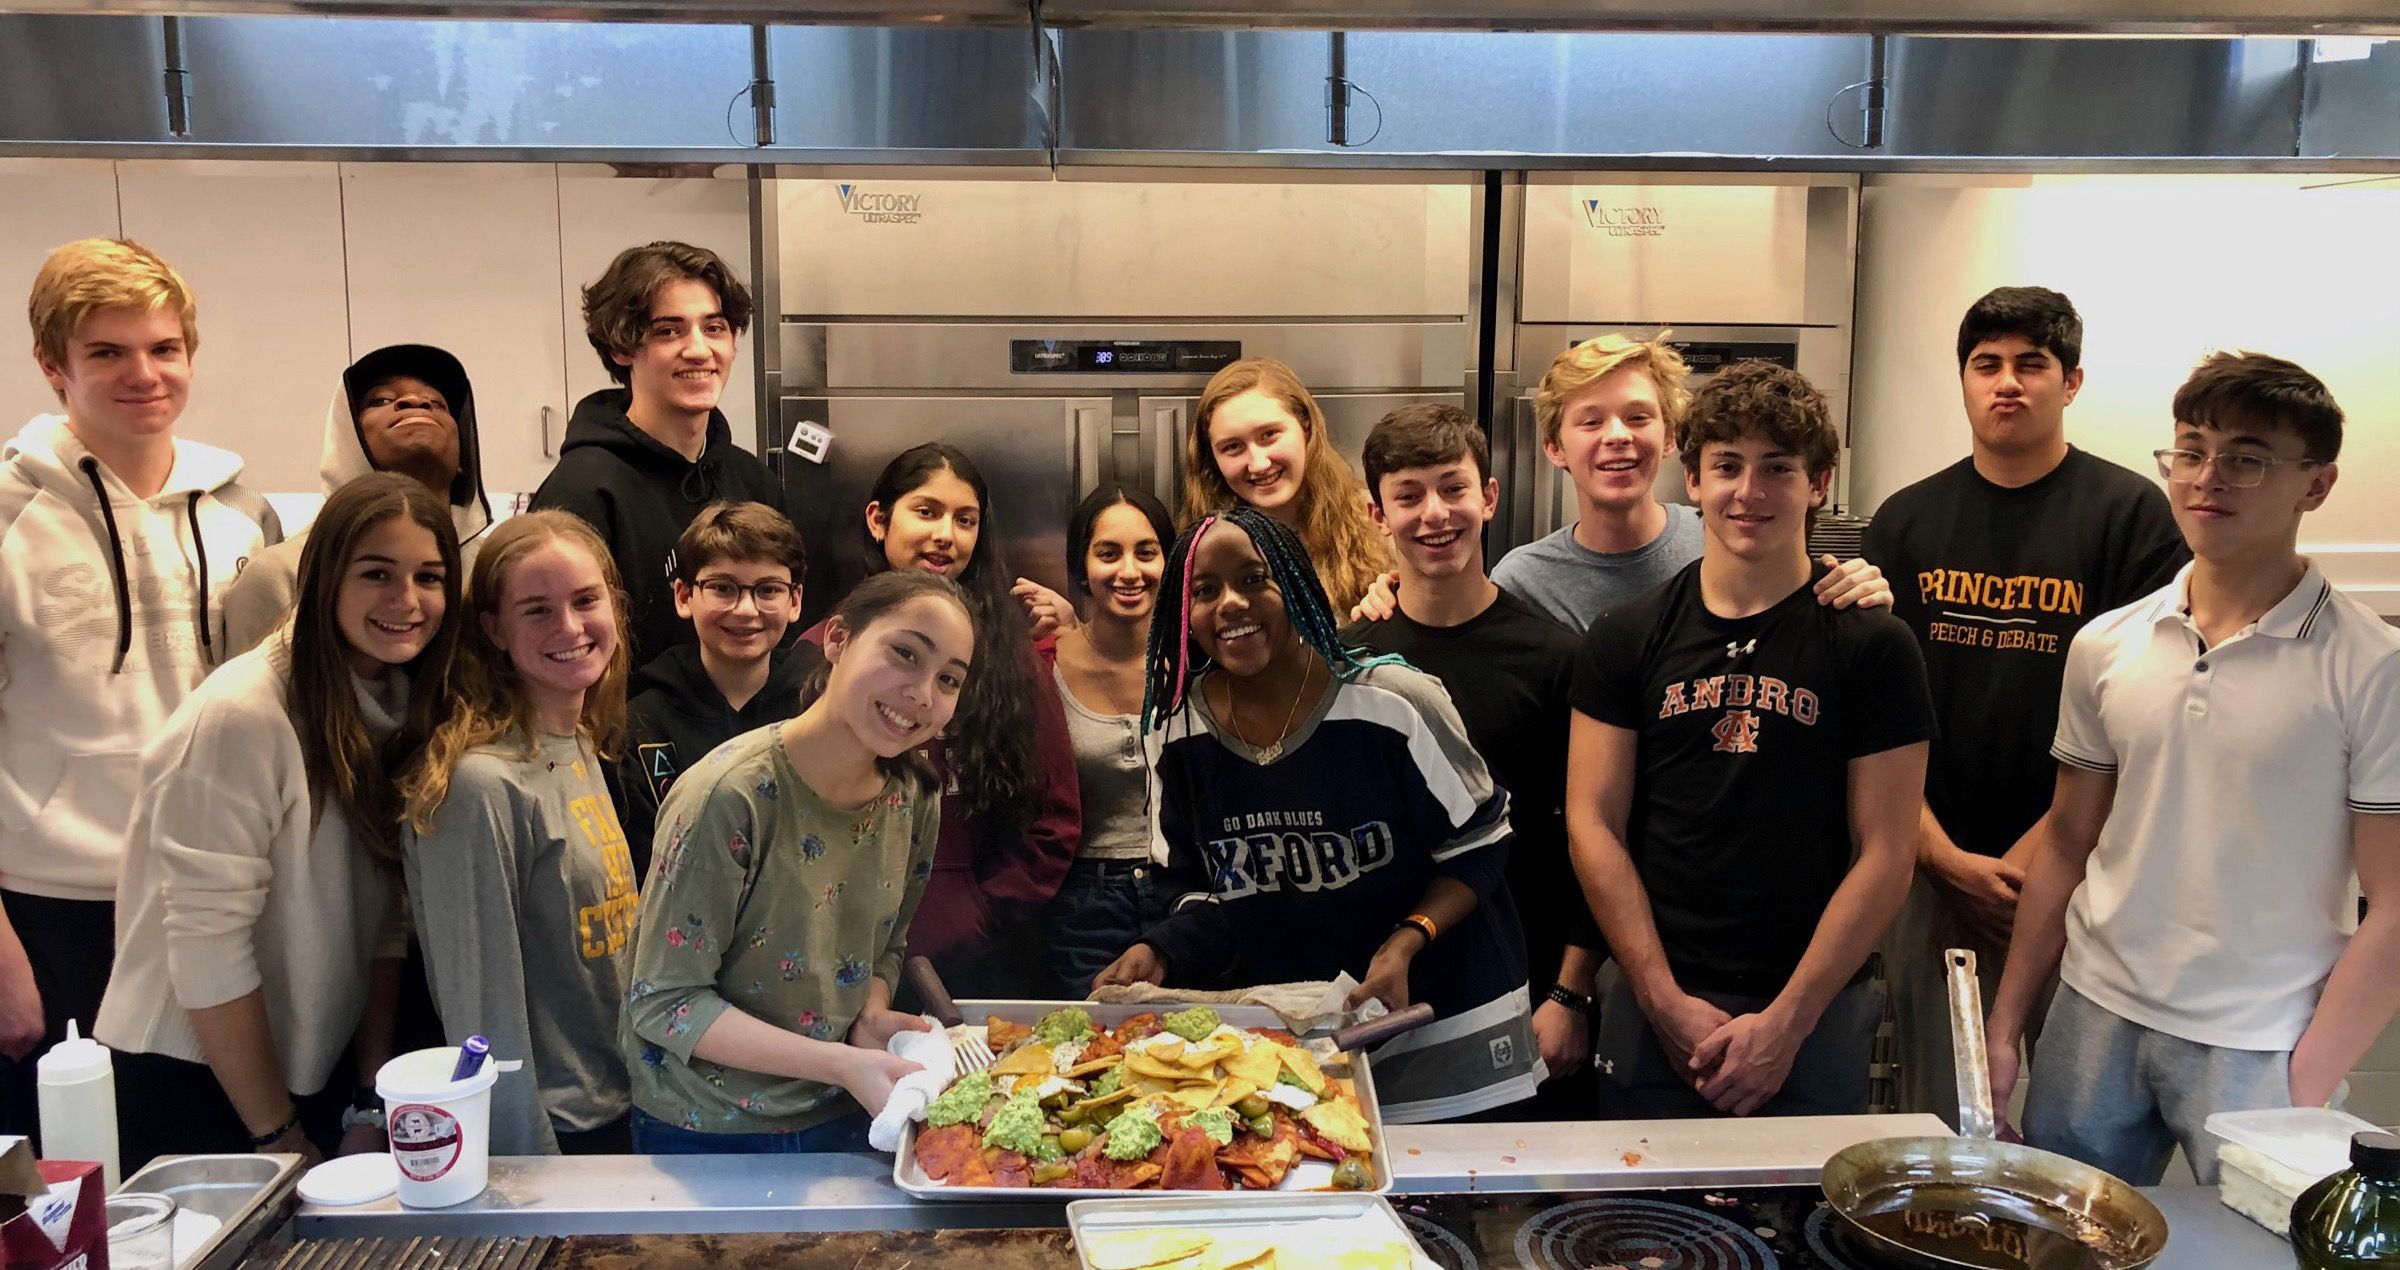 Our new teaching kitchen provides students with insights on creative cooking techniques and promotes sustainable food sources.